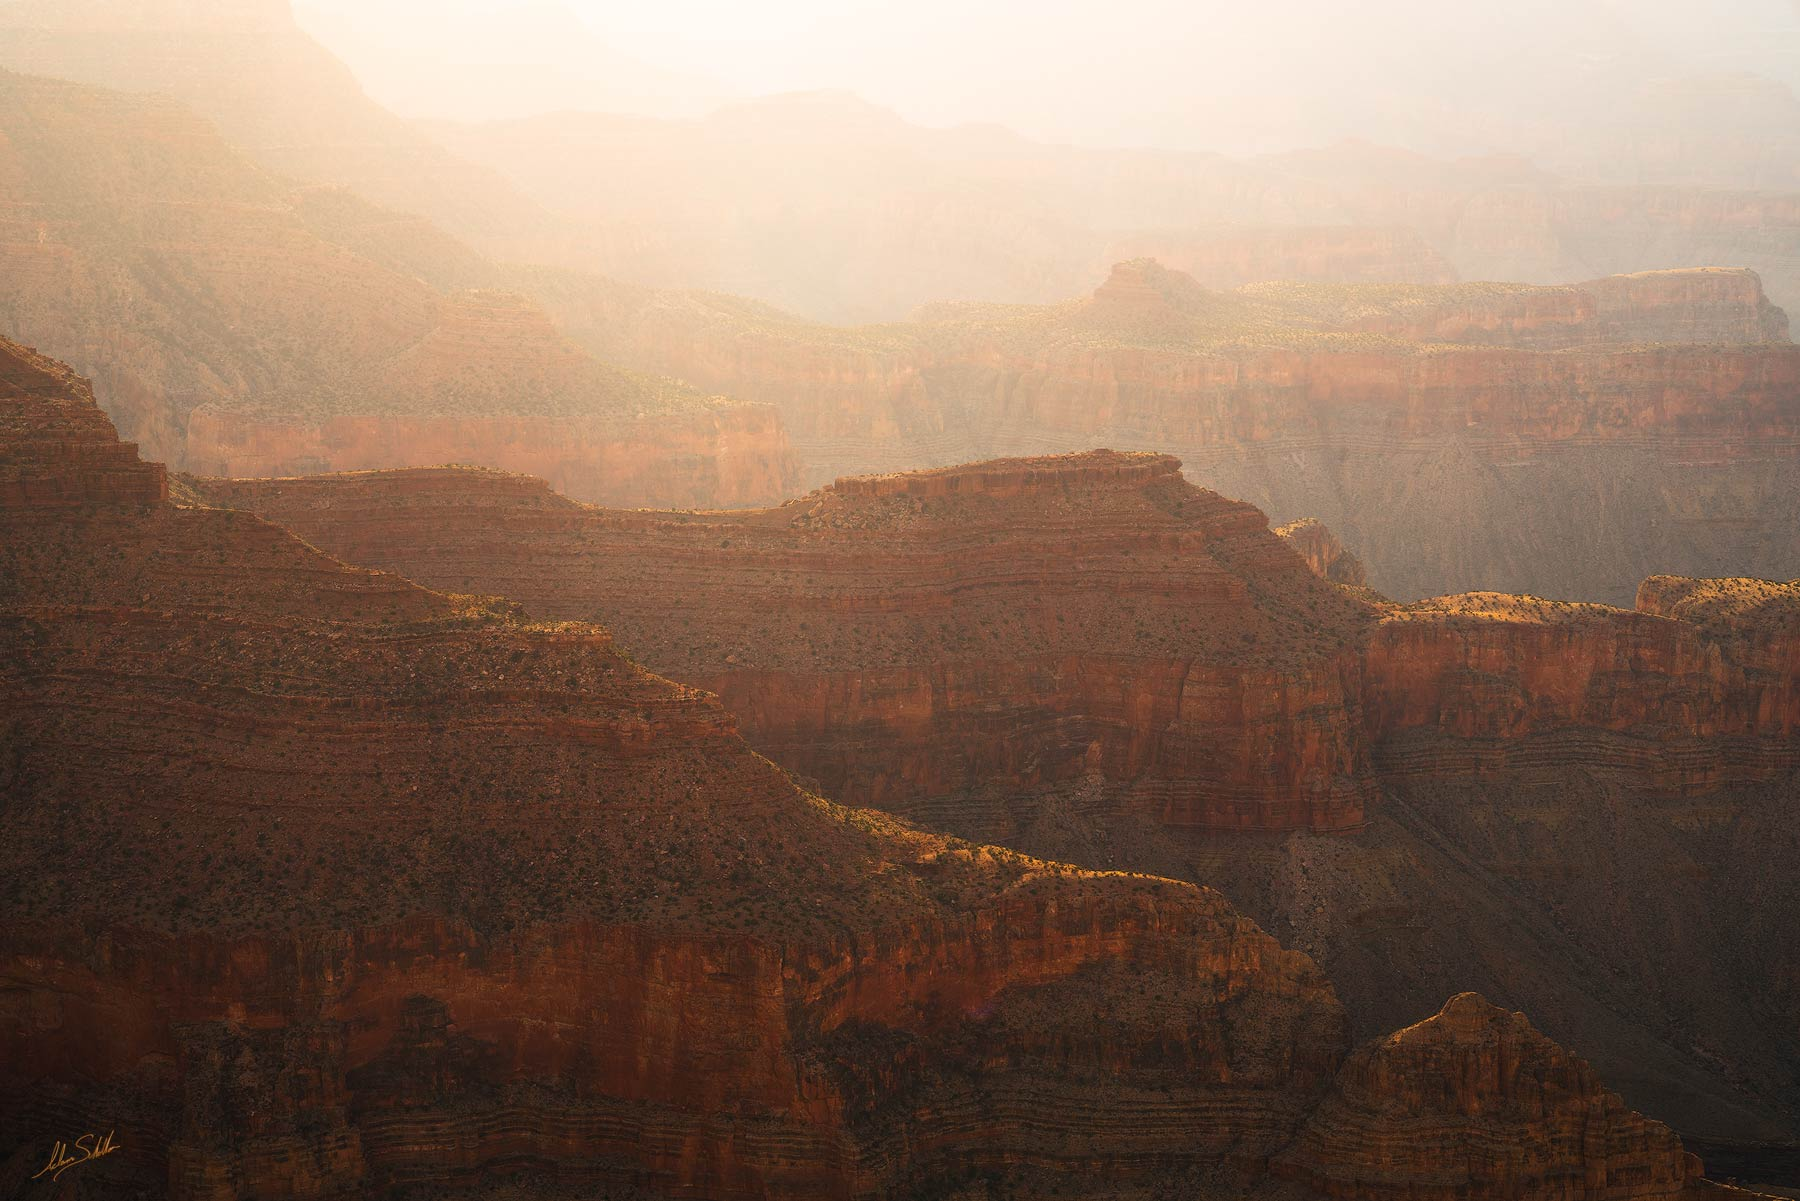 AZ, American Southwest, Arizona, Colorado Plateau, Grand Canyon, National Park, South Rim, Southwest, Zuni Point, photo